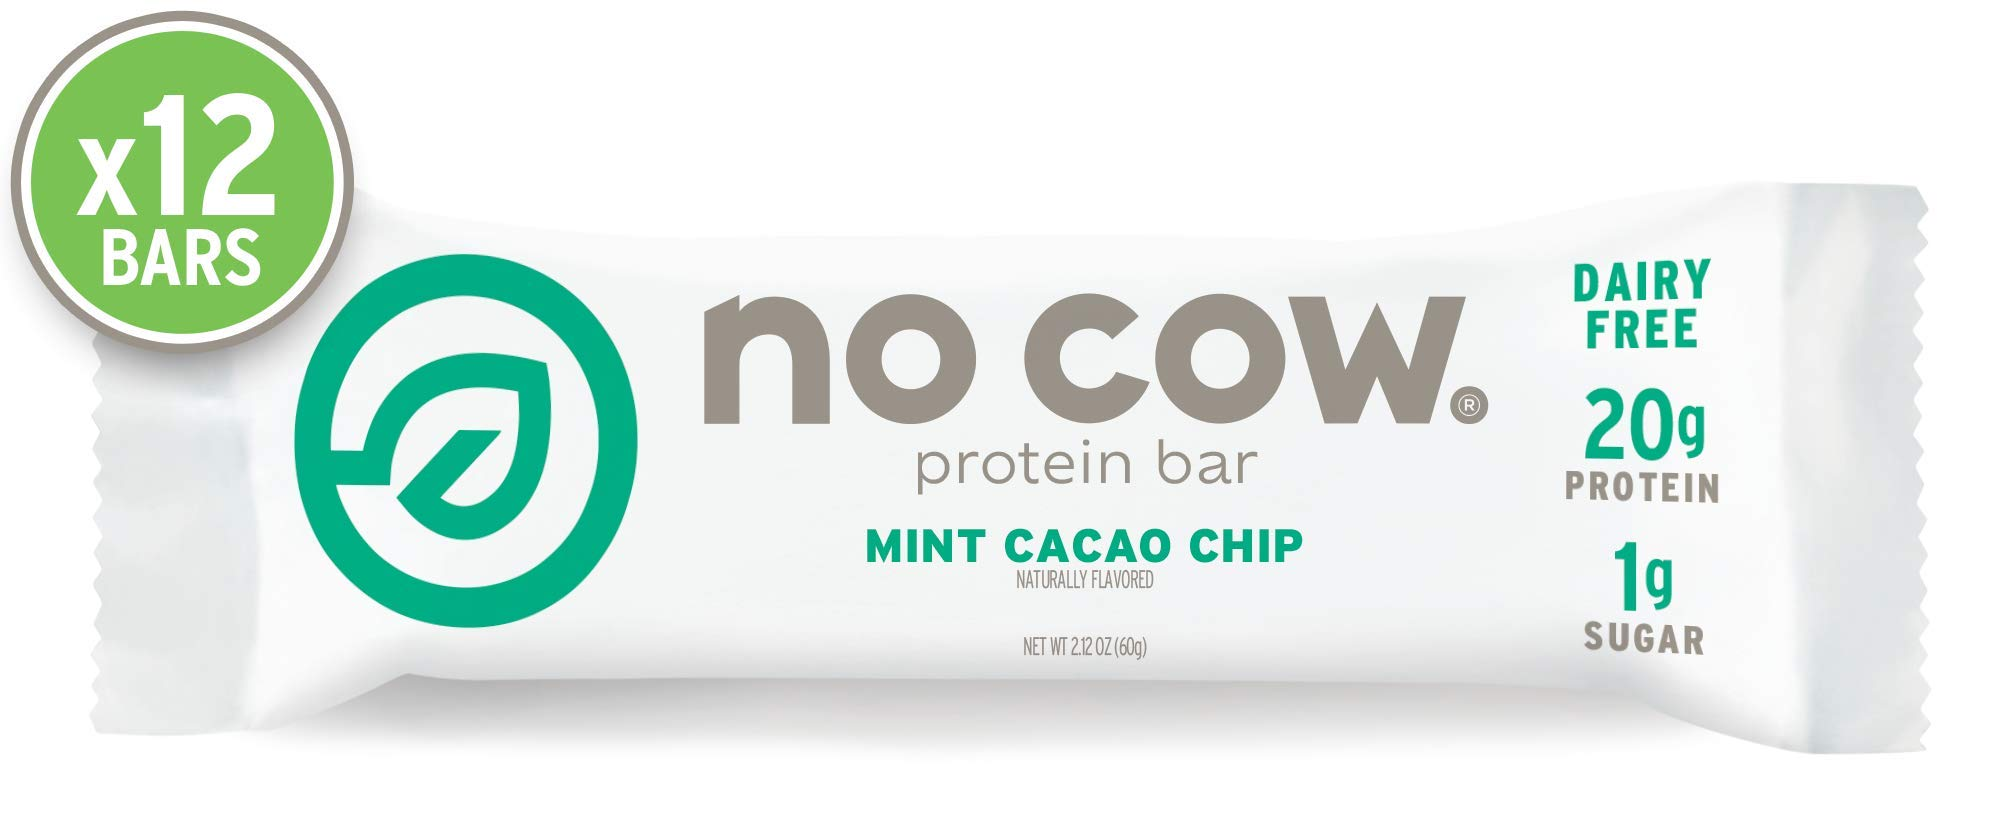 No Cow Protein bar, Mint Cacao Chip, 20g Plant Based Protein, Keto Friendly, Low Sugar, Dairy Free, Gluten Free, Vegan, High Fiber, Non-GMO, 12Count by No Cow